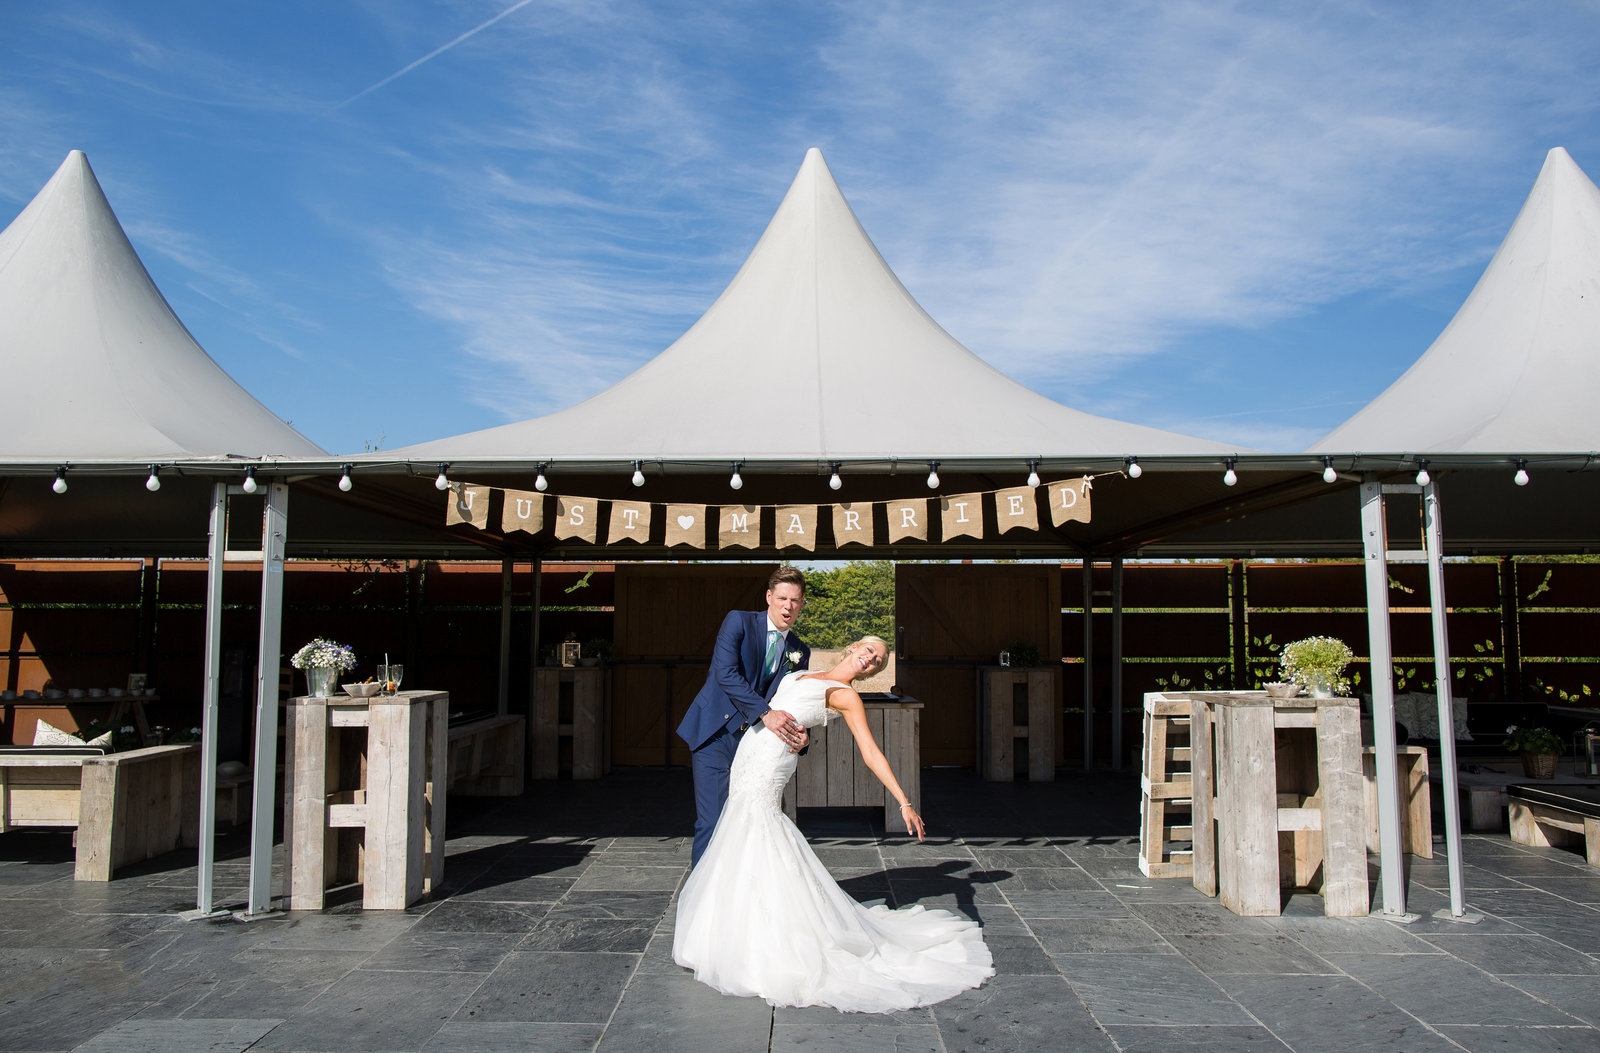 adorlee-0546-southend-barns-wedding-photographer-chichester-west-sussex